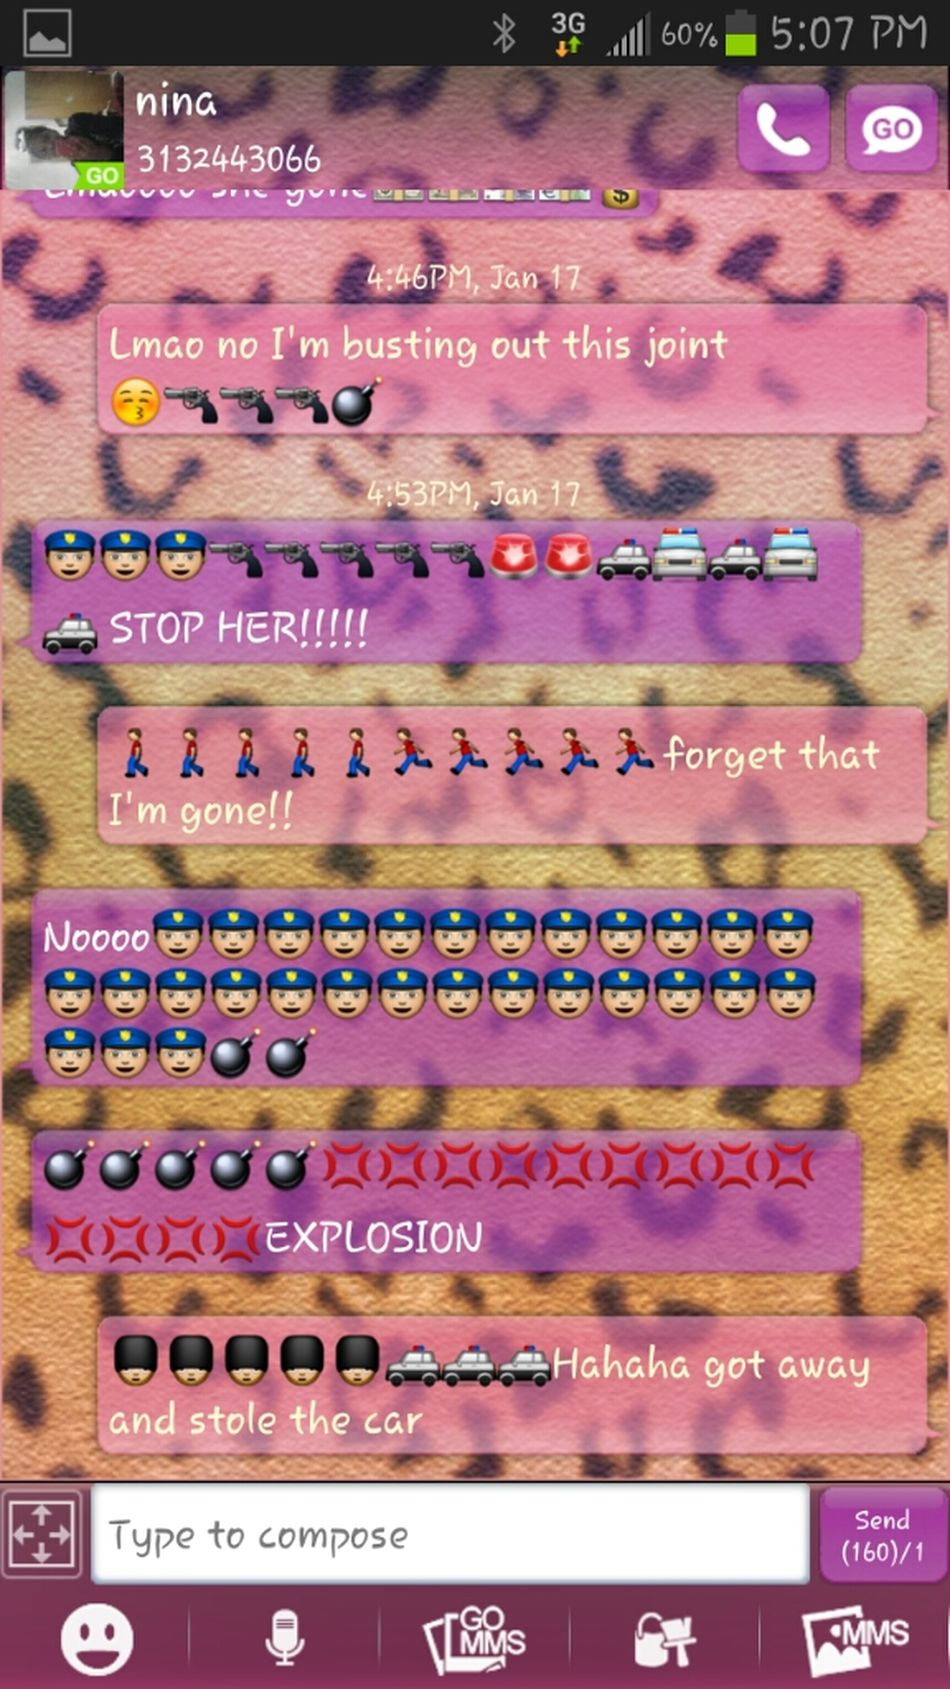 Me And My Bestfriend Convo.